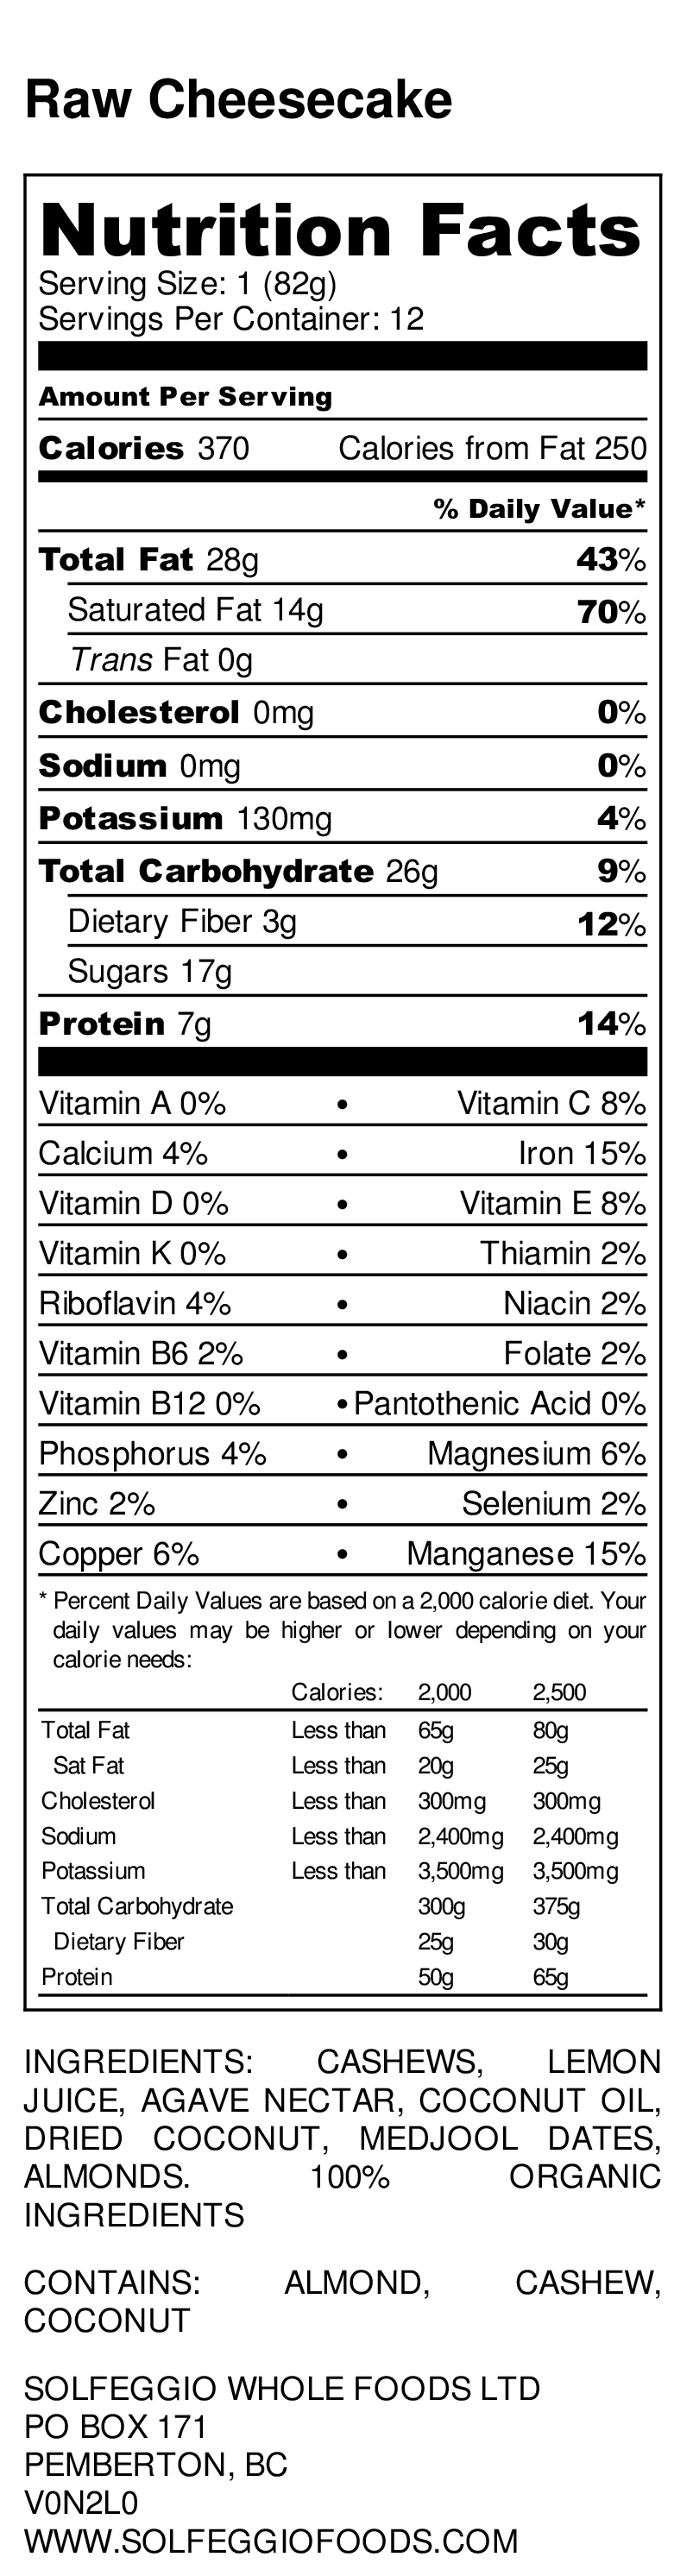 Raw Cheesecake - Nutrition Label.jpg